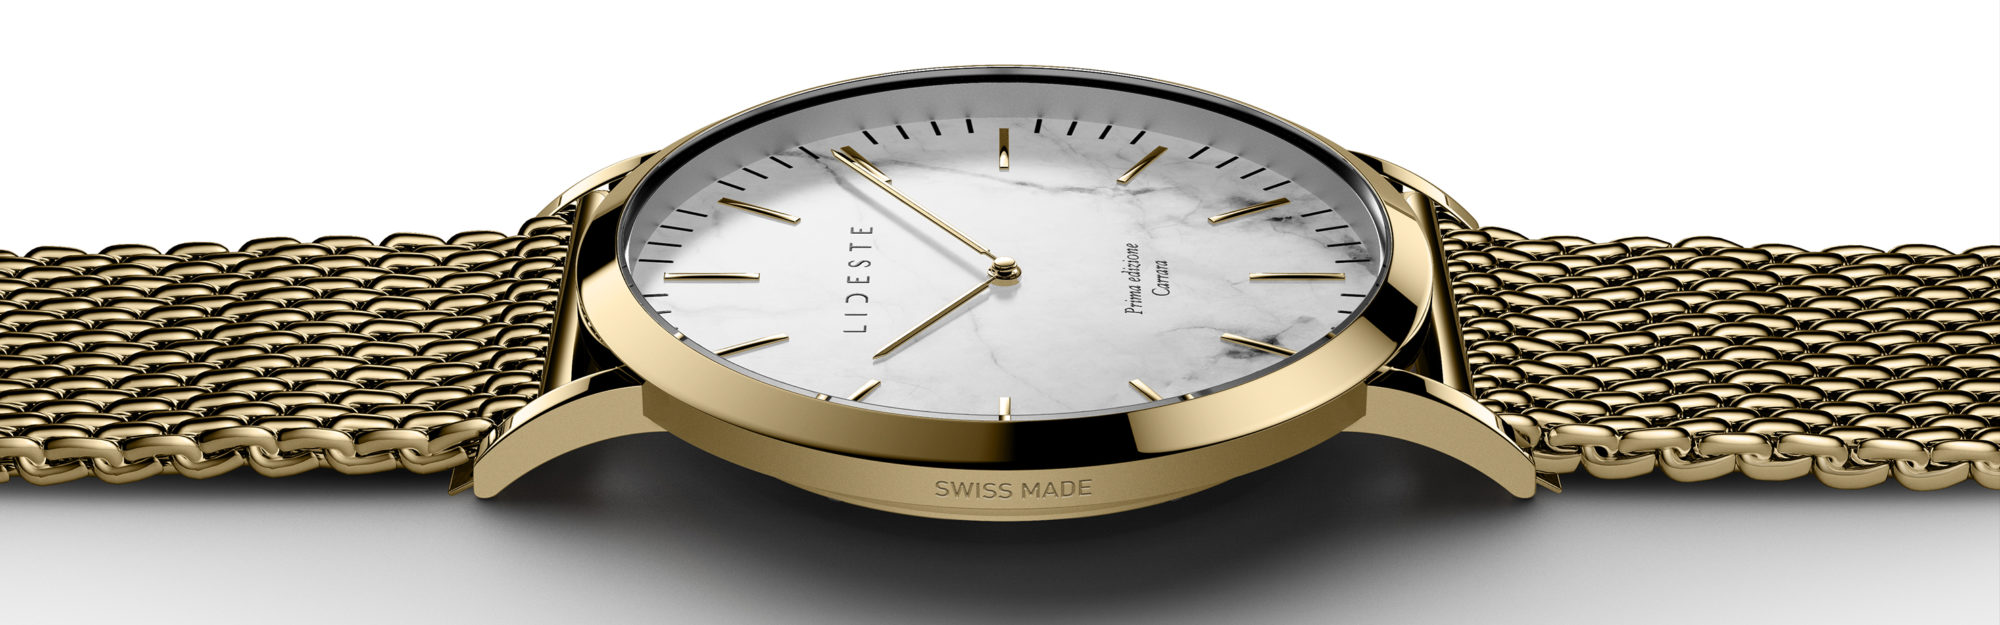 gold mesh watch for men and women